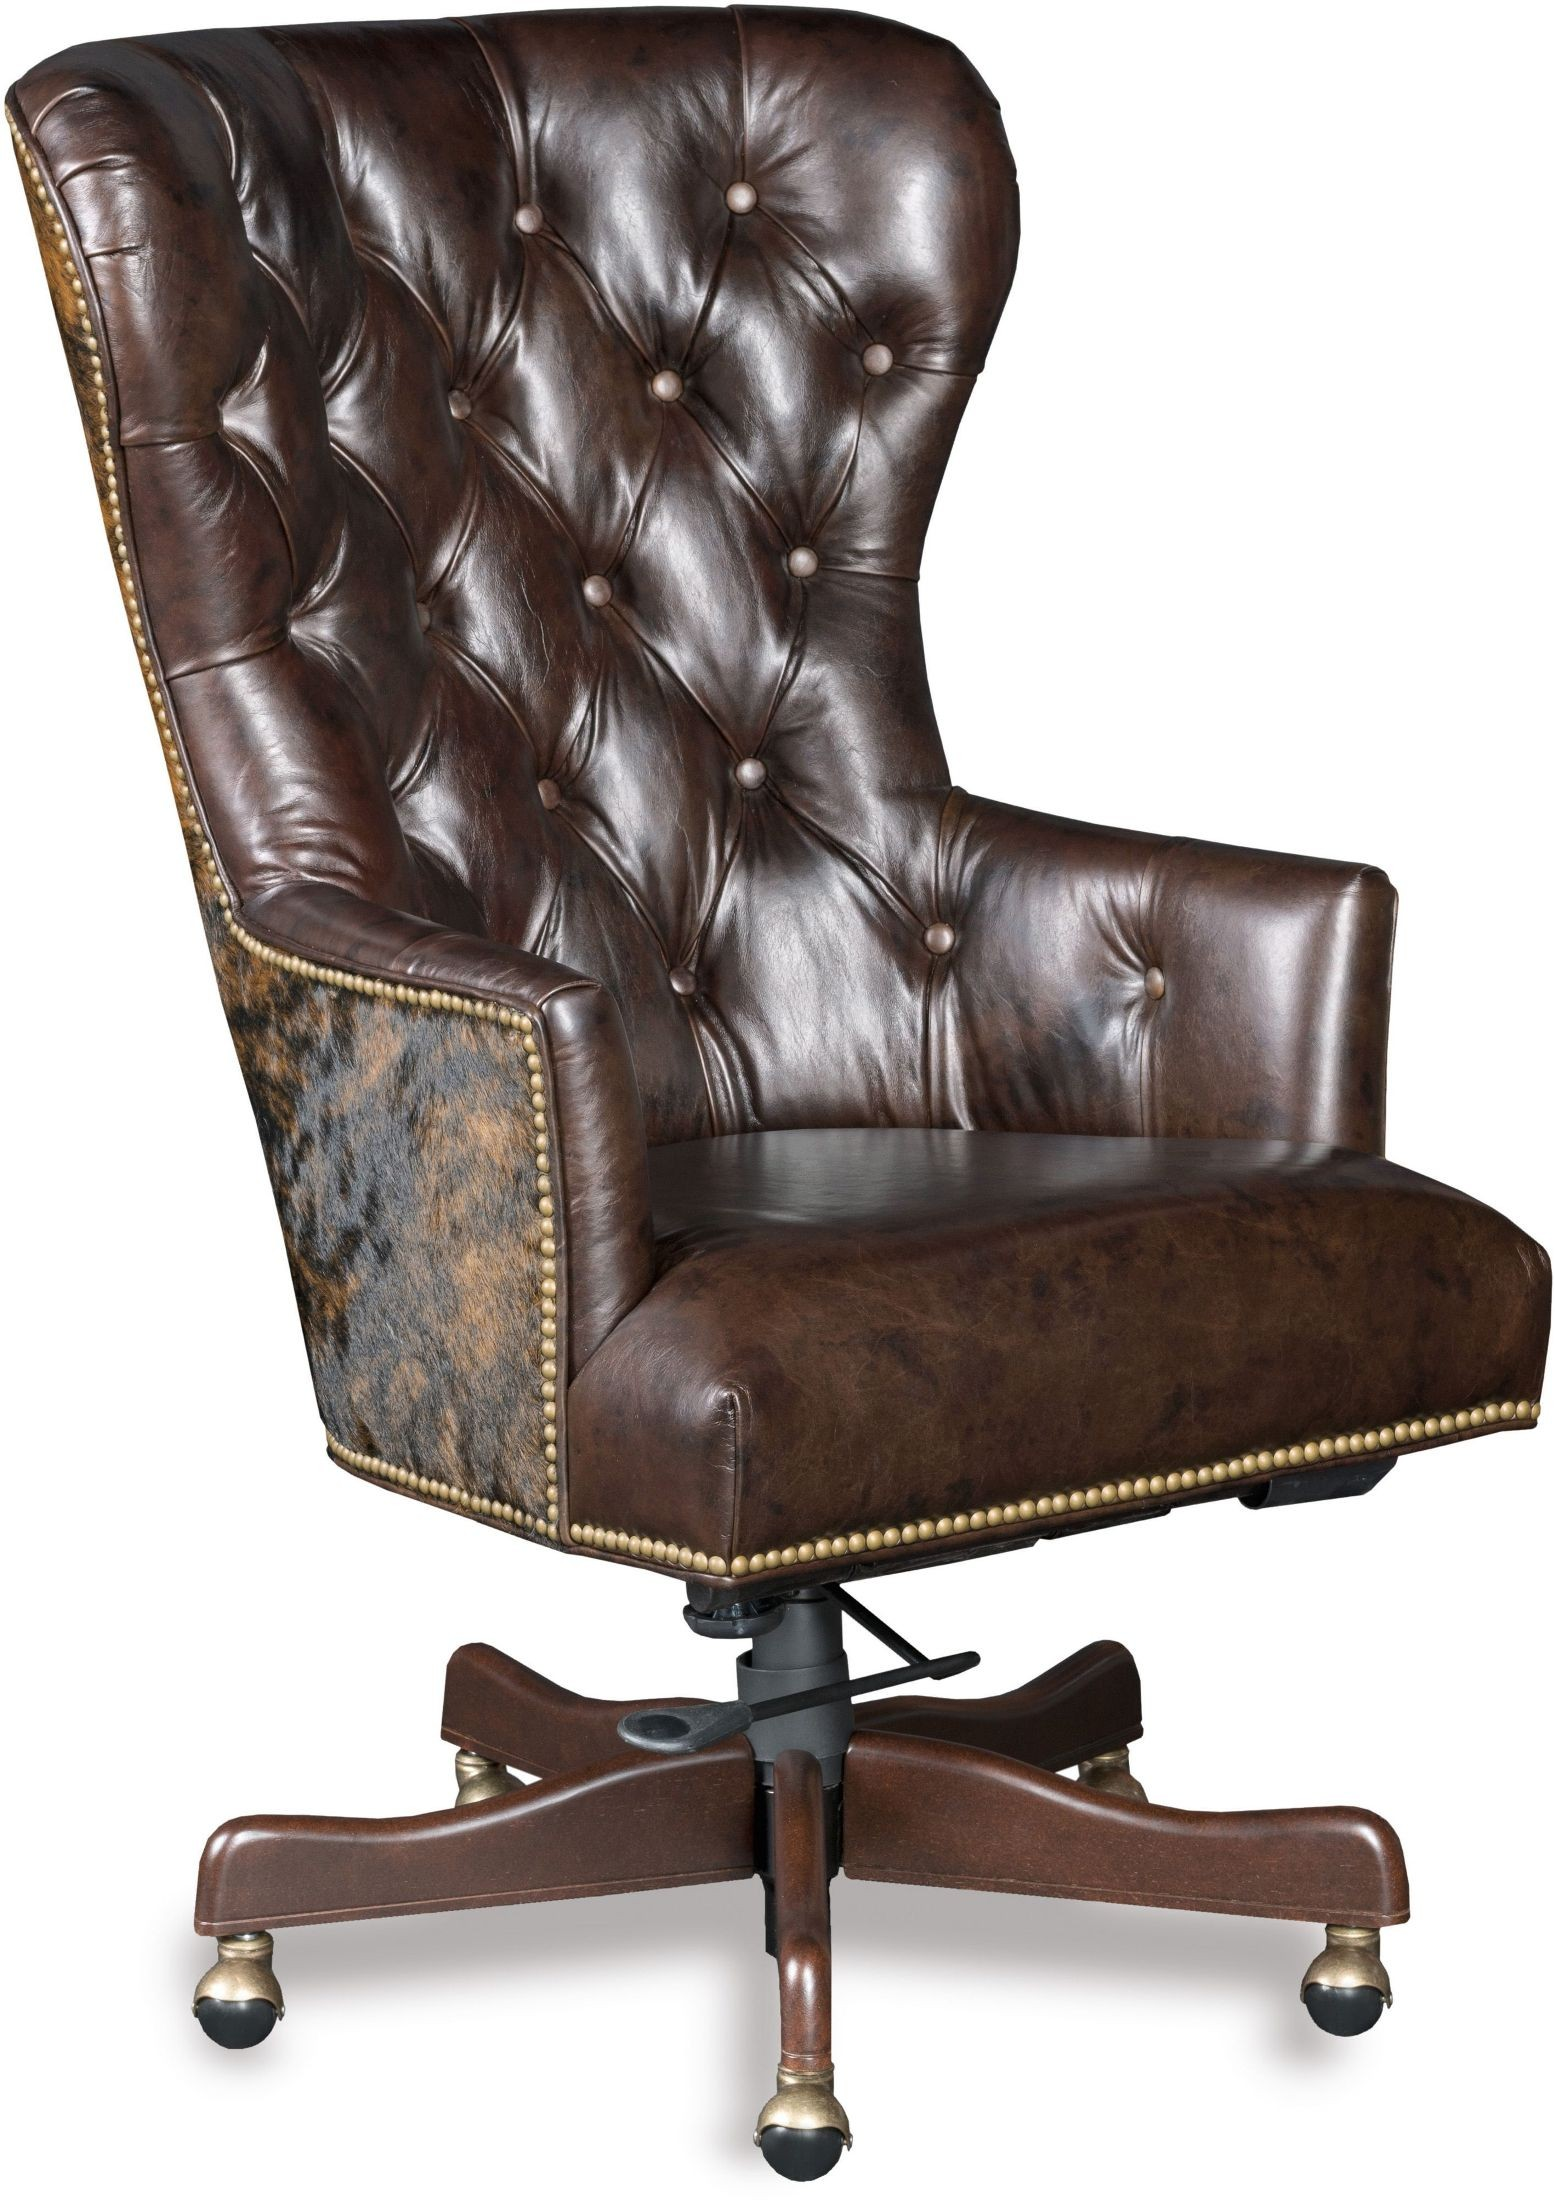 swivel chair brown best for pc gaming 2016 katherine leather home office from